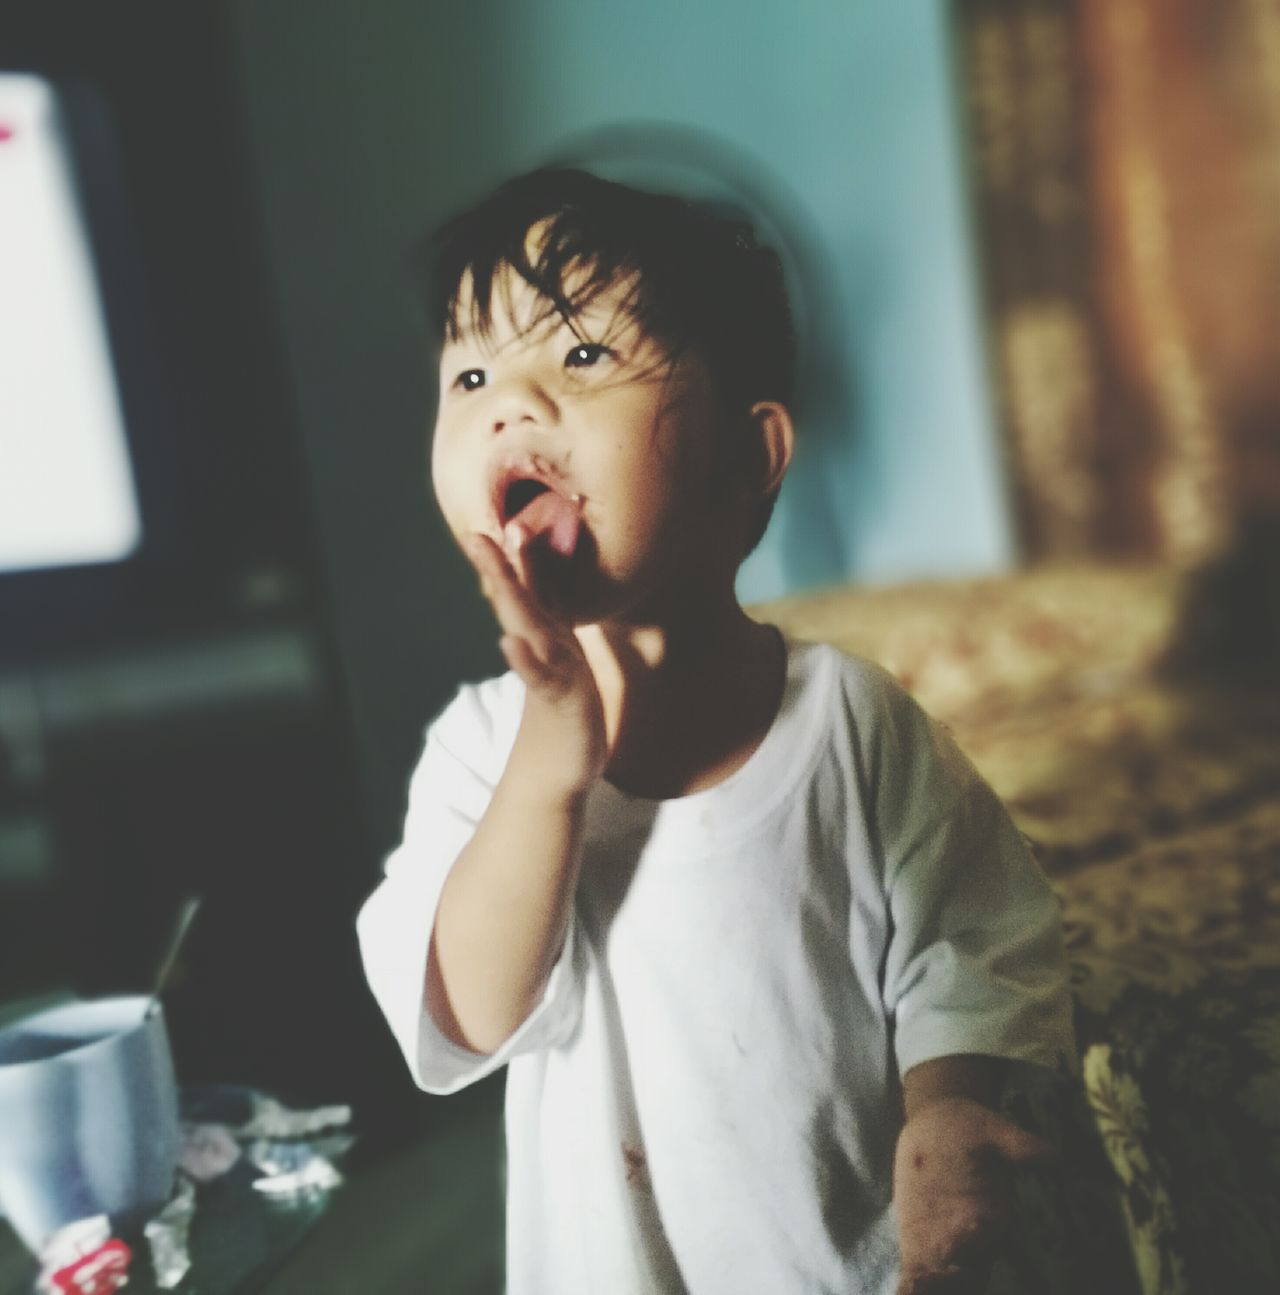 Mouth Open One Person Eating Indoors  Making A Face Kid Photography Kid Kid Eating Chocolate The Photojournalist - 2017 EyeEm Awards